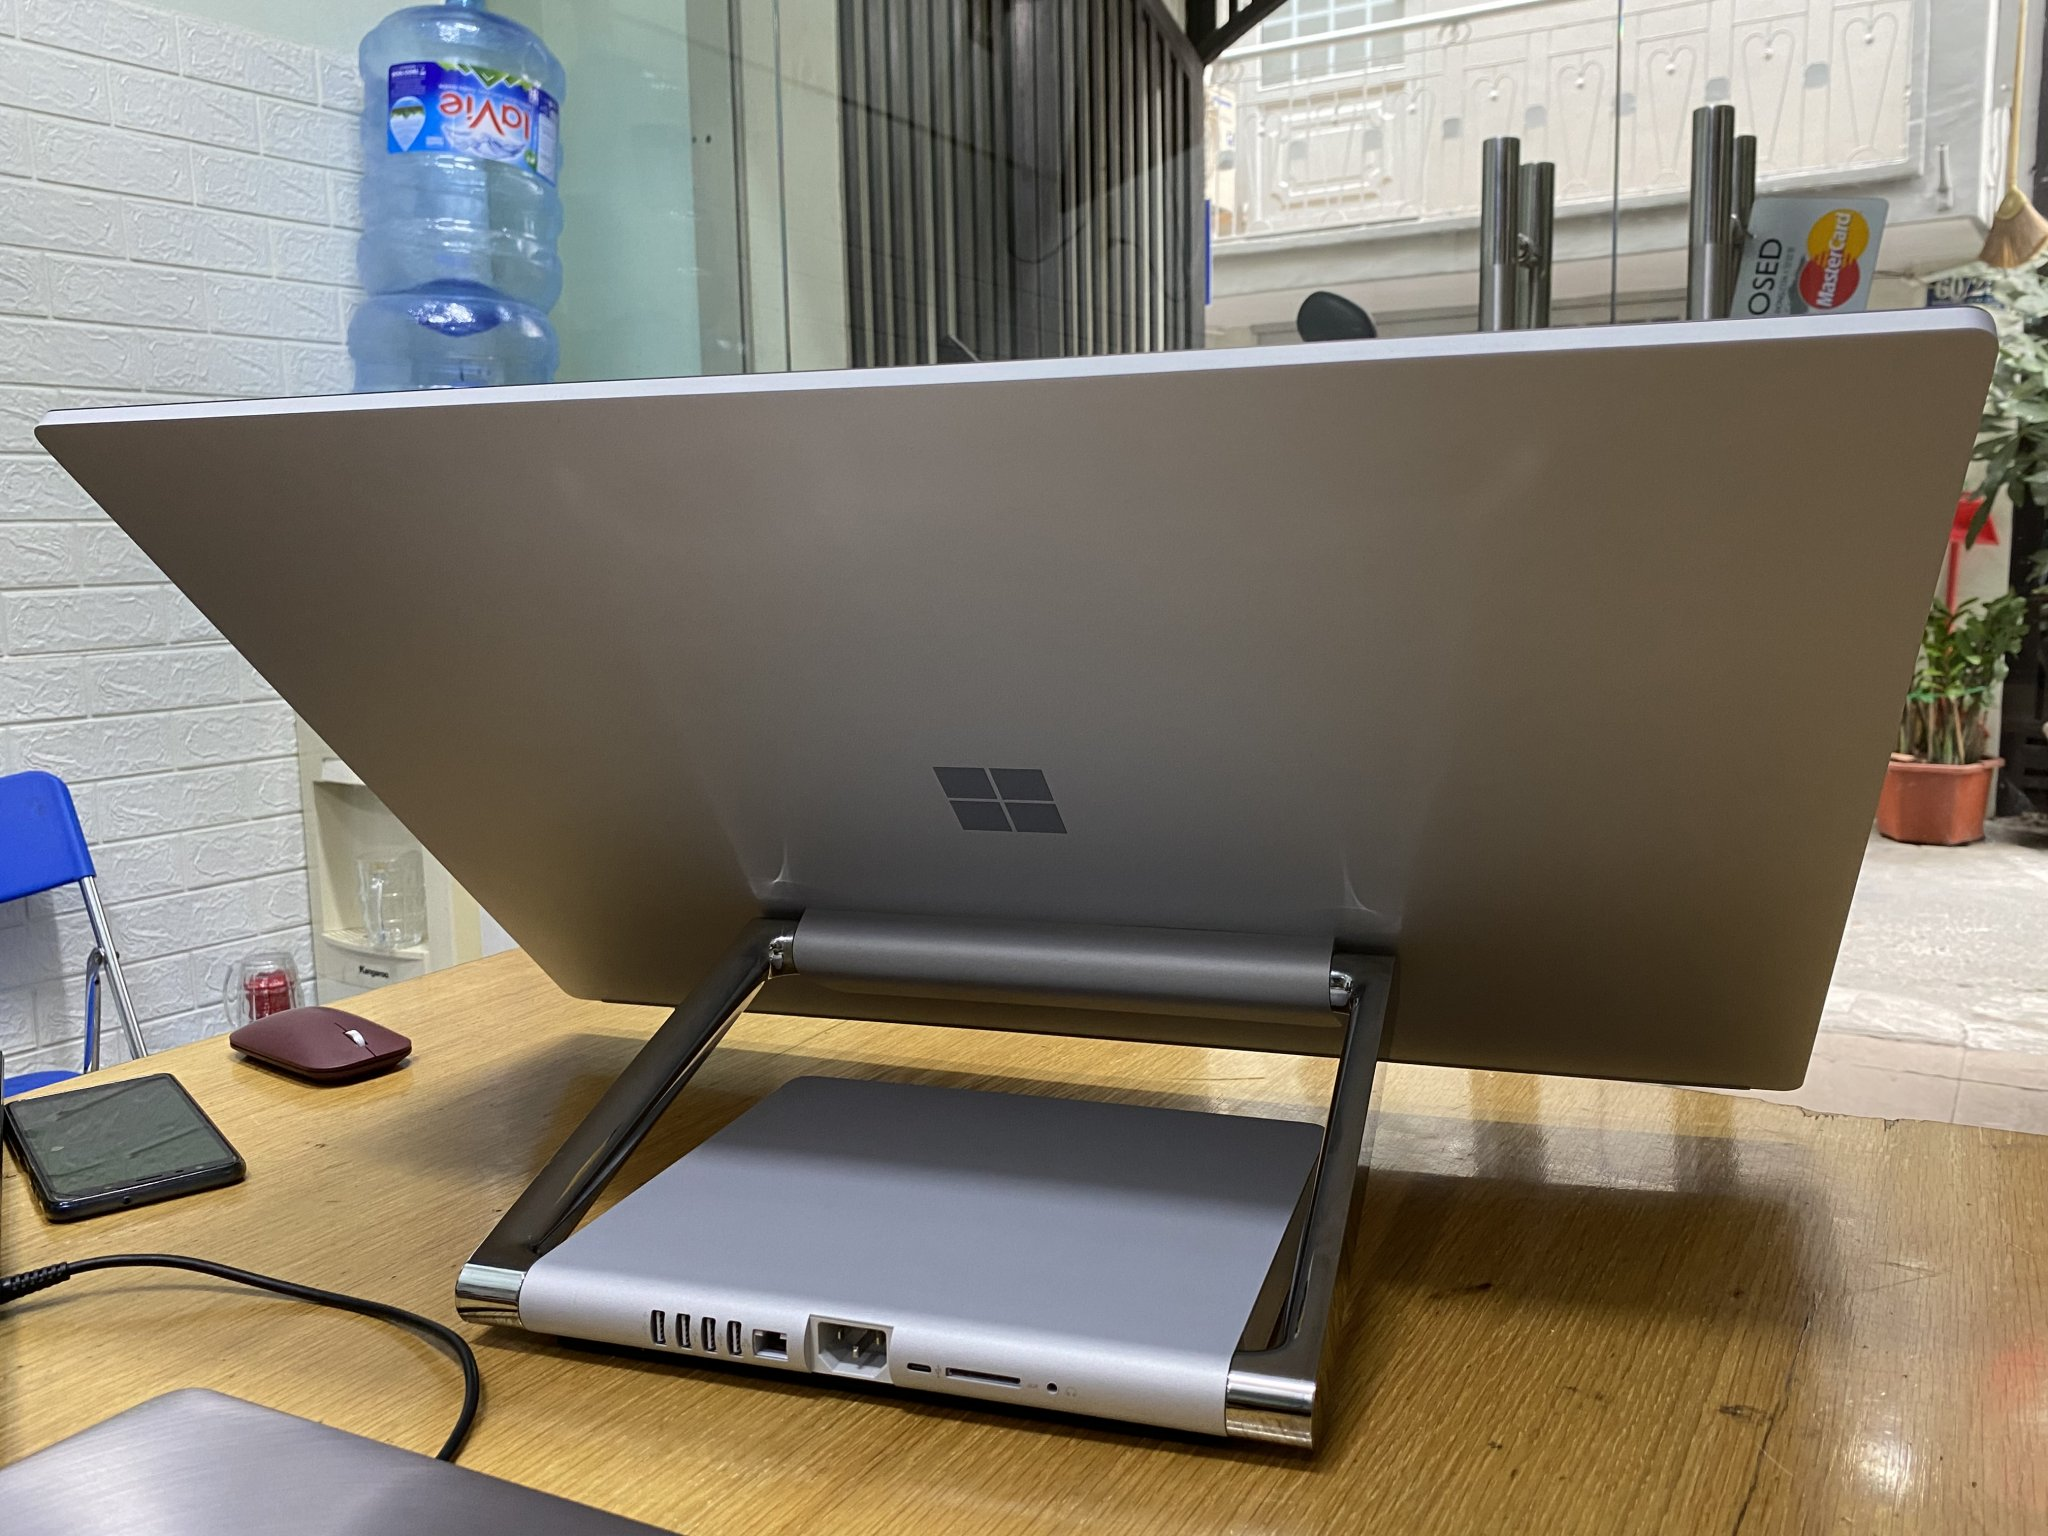 surface studio 2 (4).JPG